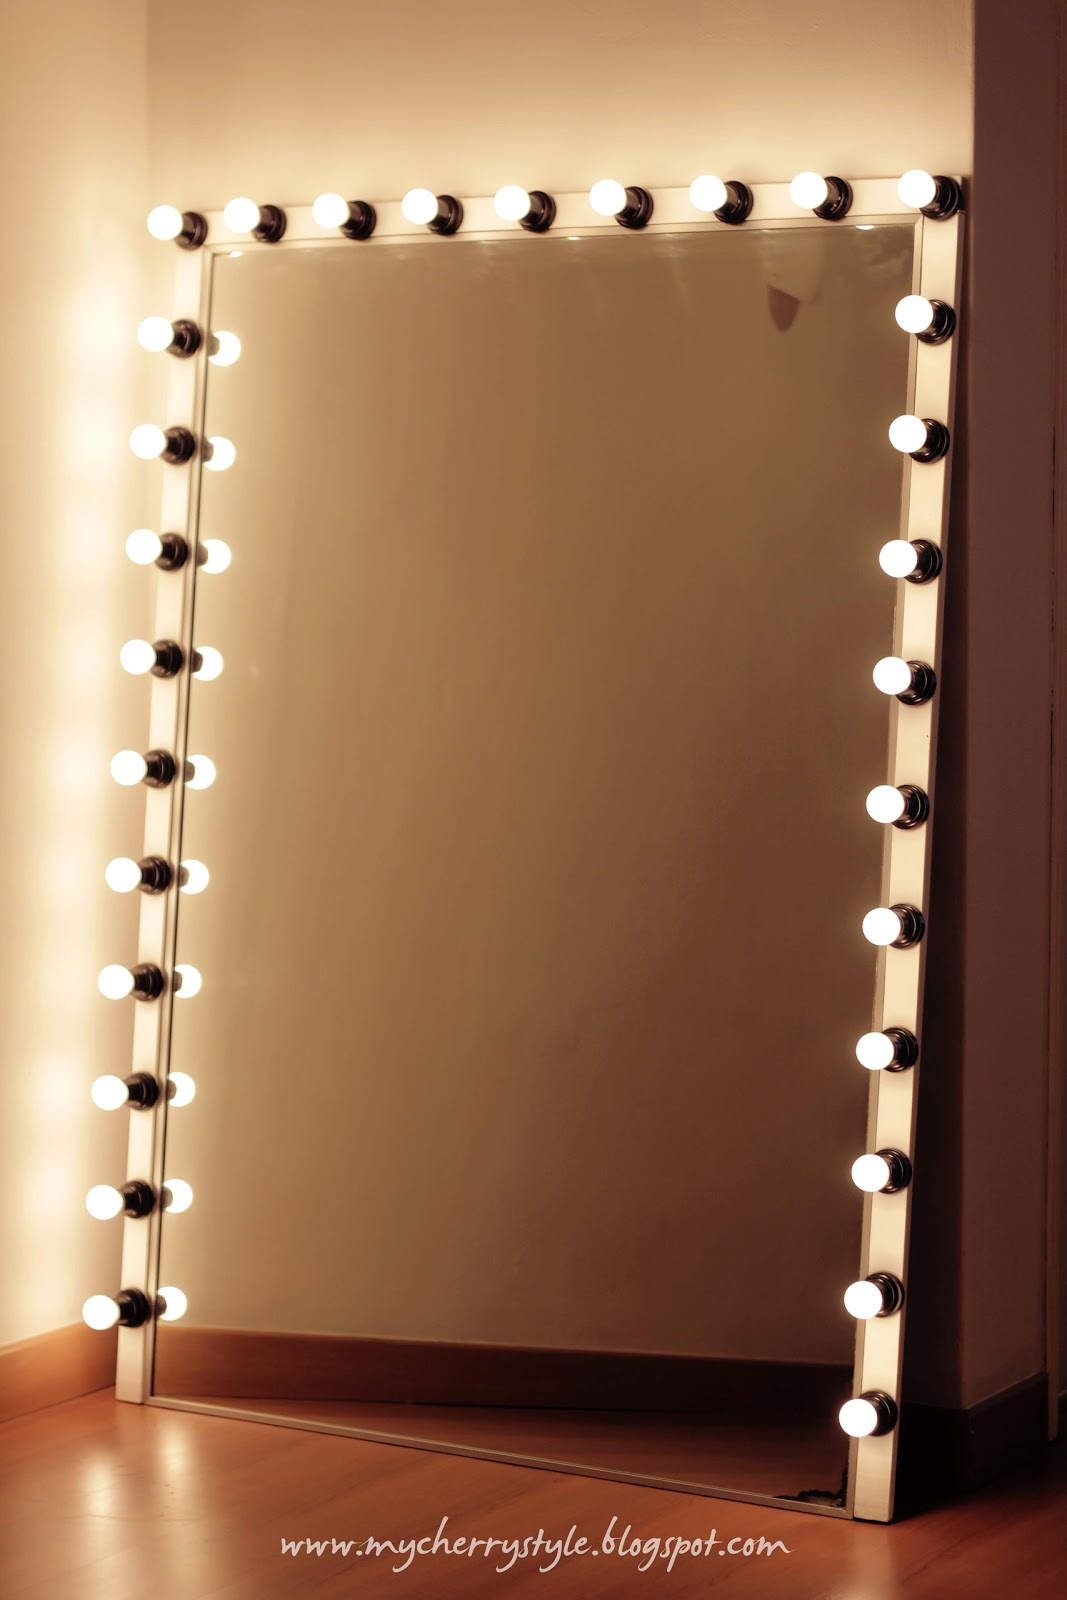 Vanity Girl Hollywood Light Bulbs : DIY Hollywood-style mirror with lights! Tutorial from scratch. for real.